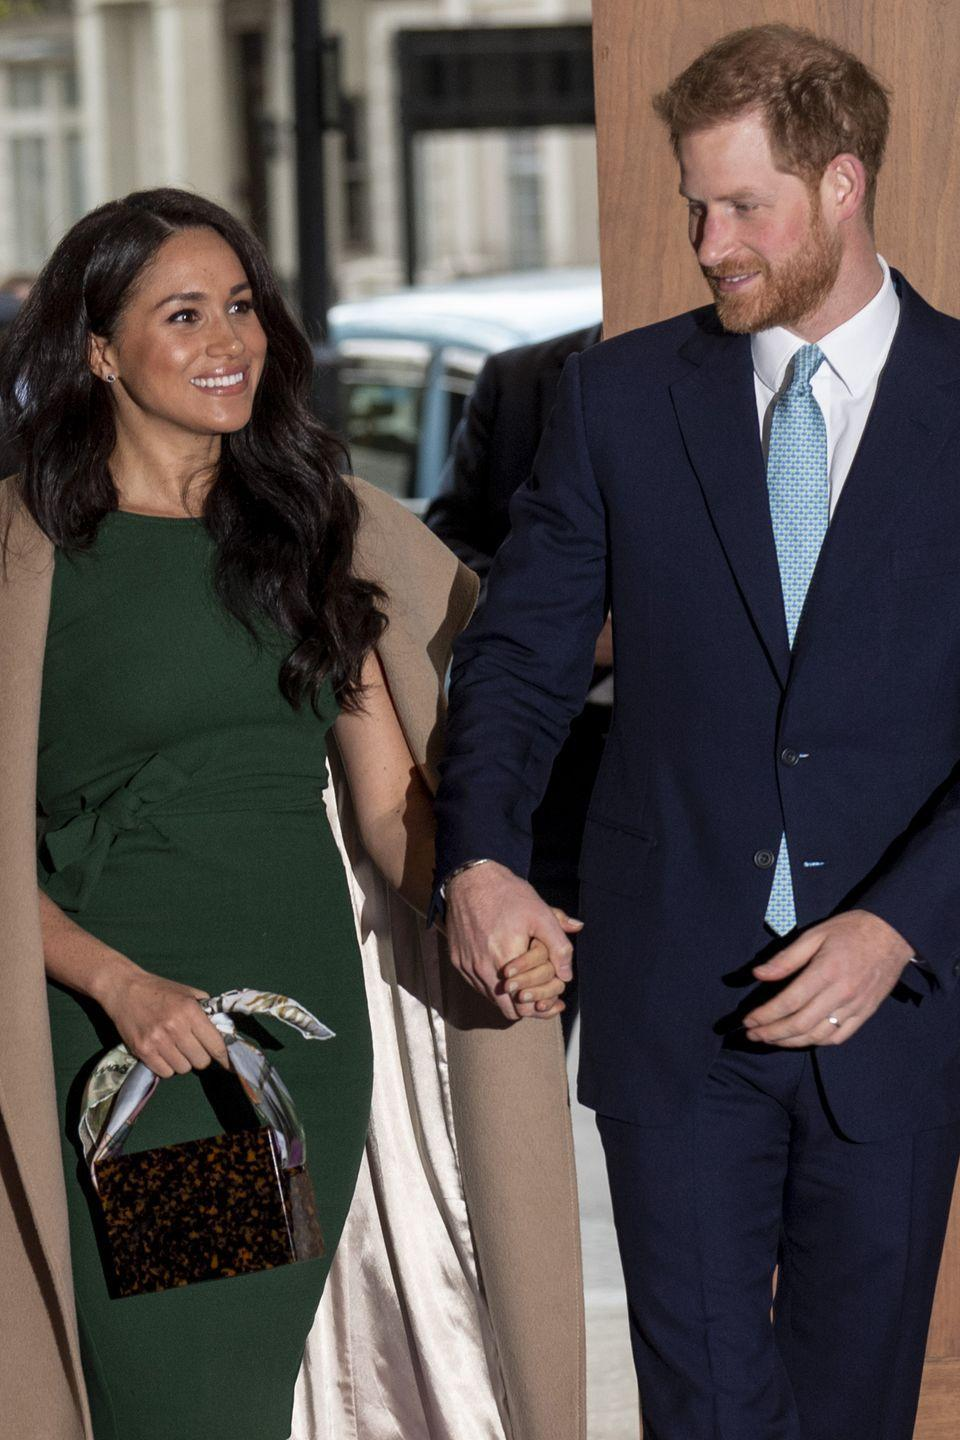 <p>Harry and Meghan are all smiles while attending the WellChild awards at Royal Lancaster Hotel.</p>